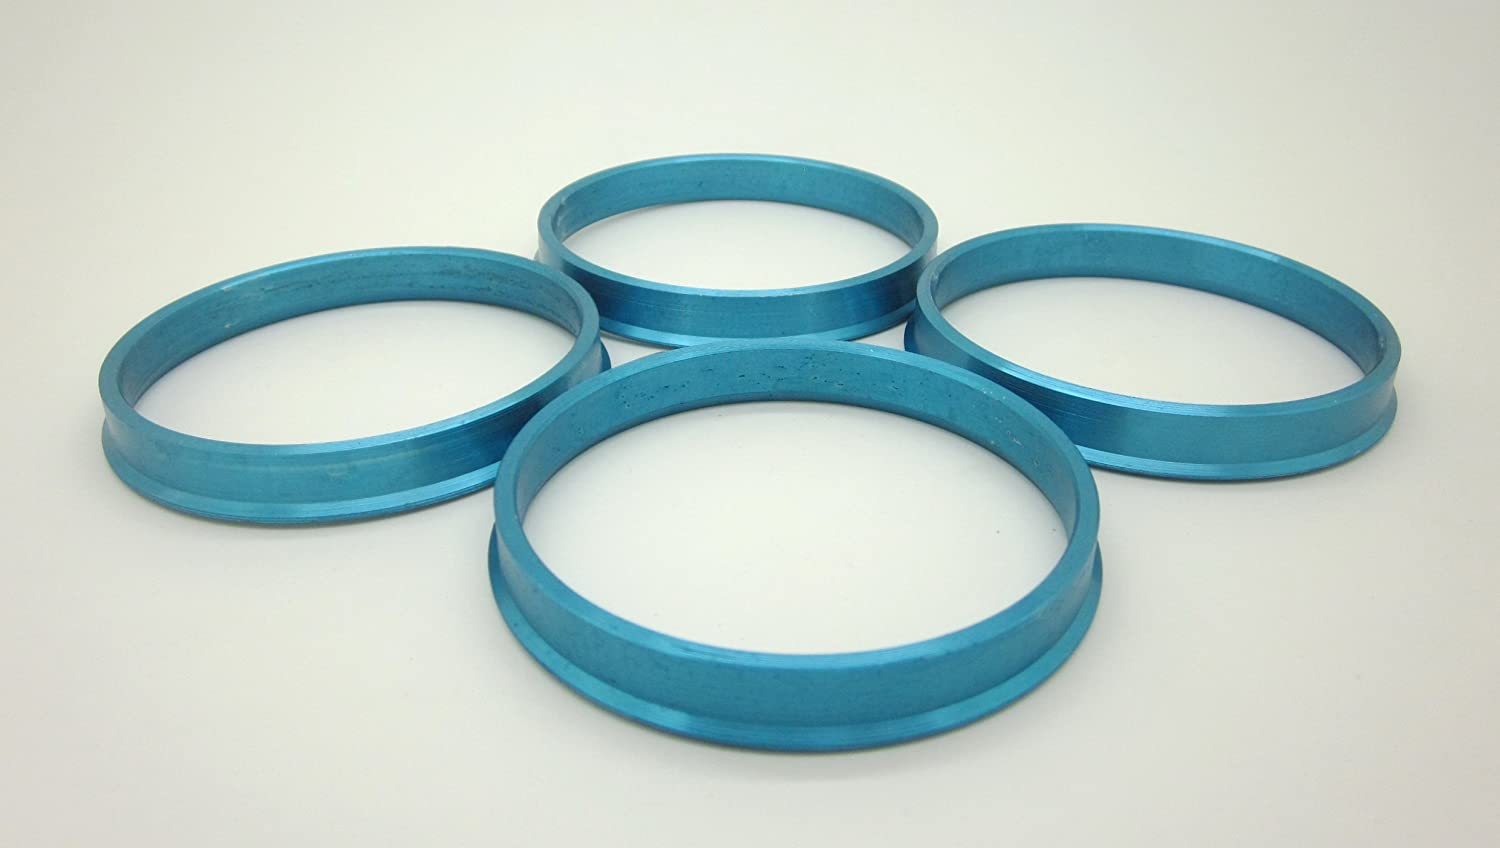 Pack of 4 Hubrings AccuWheel Automotive 73.00mm OD to 57.10mm ID AccuWheel ACHR73-5710M Aluminum Wheel Hub Centric Rings